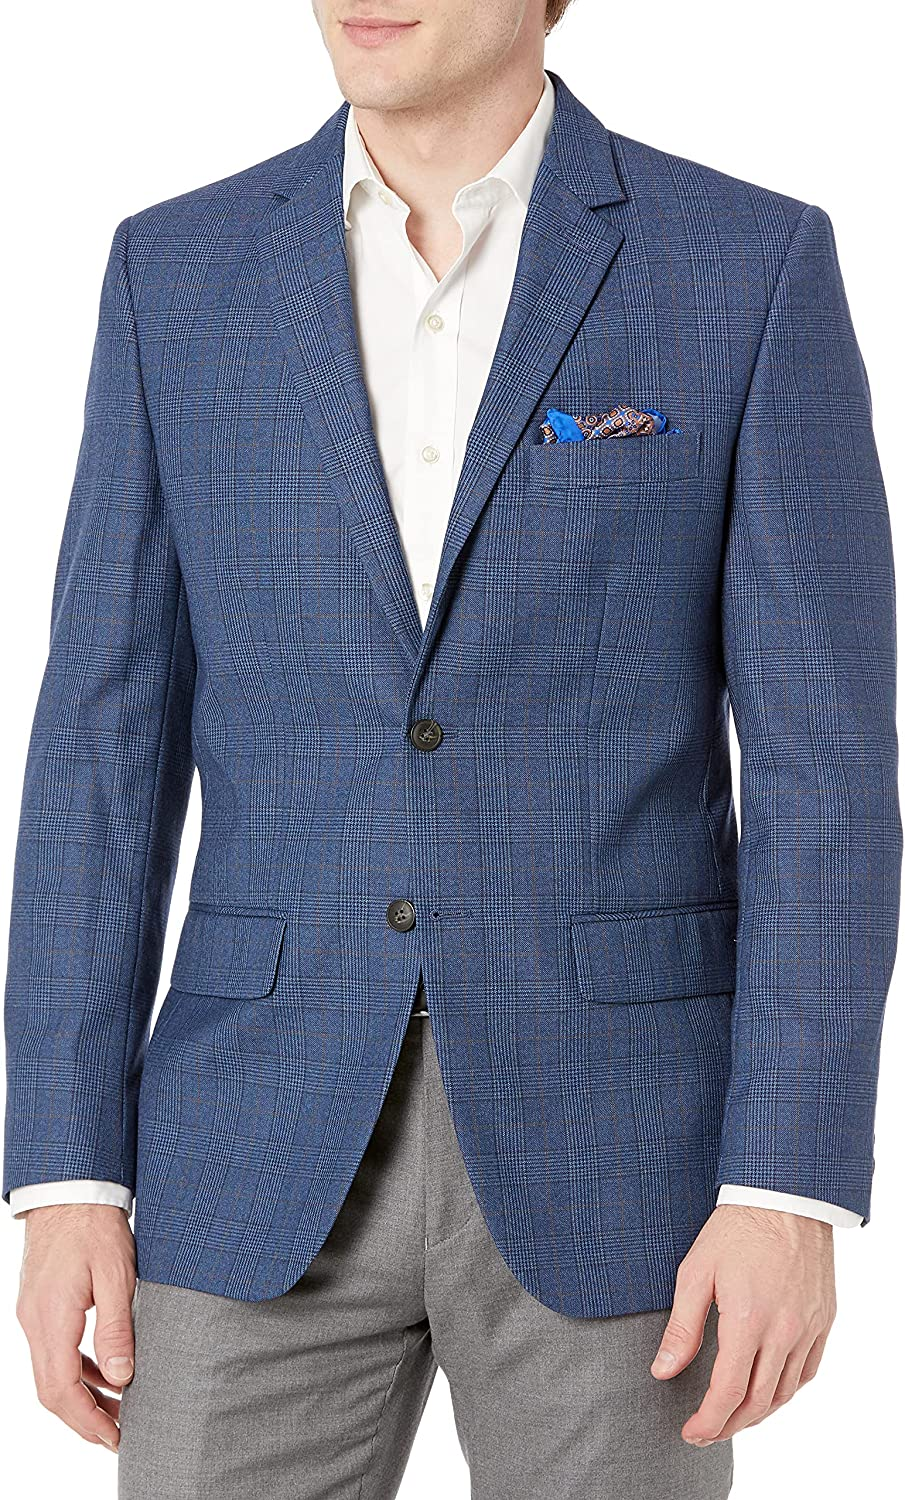 Haggar Opening large release sale mens Glen Plaid Tailored Fit Vent Sport Center Sales for sale Coat